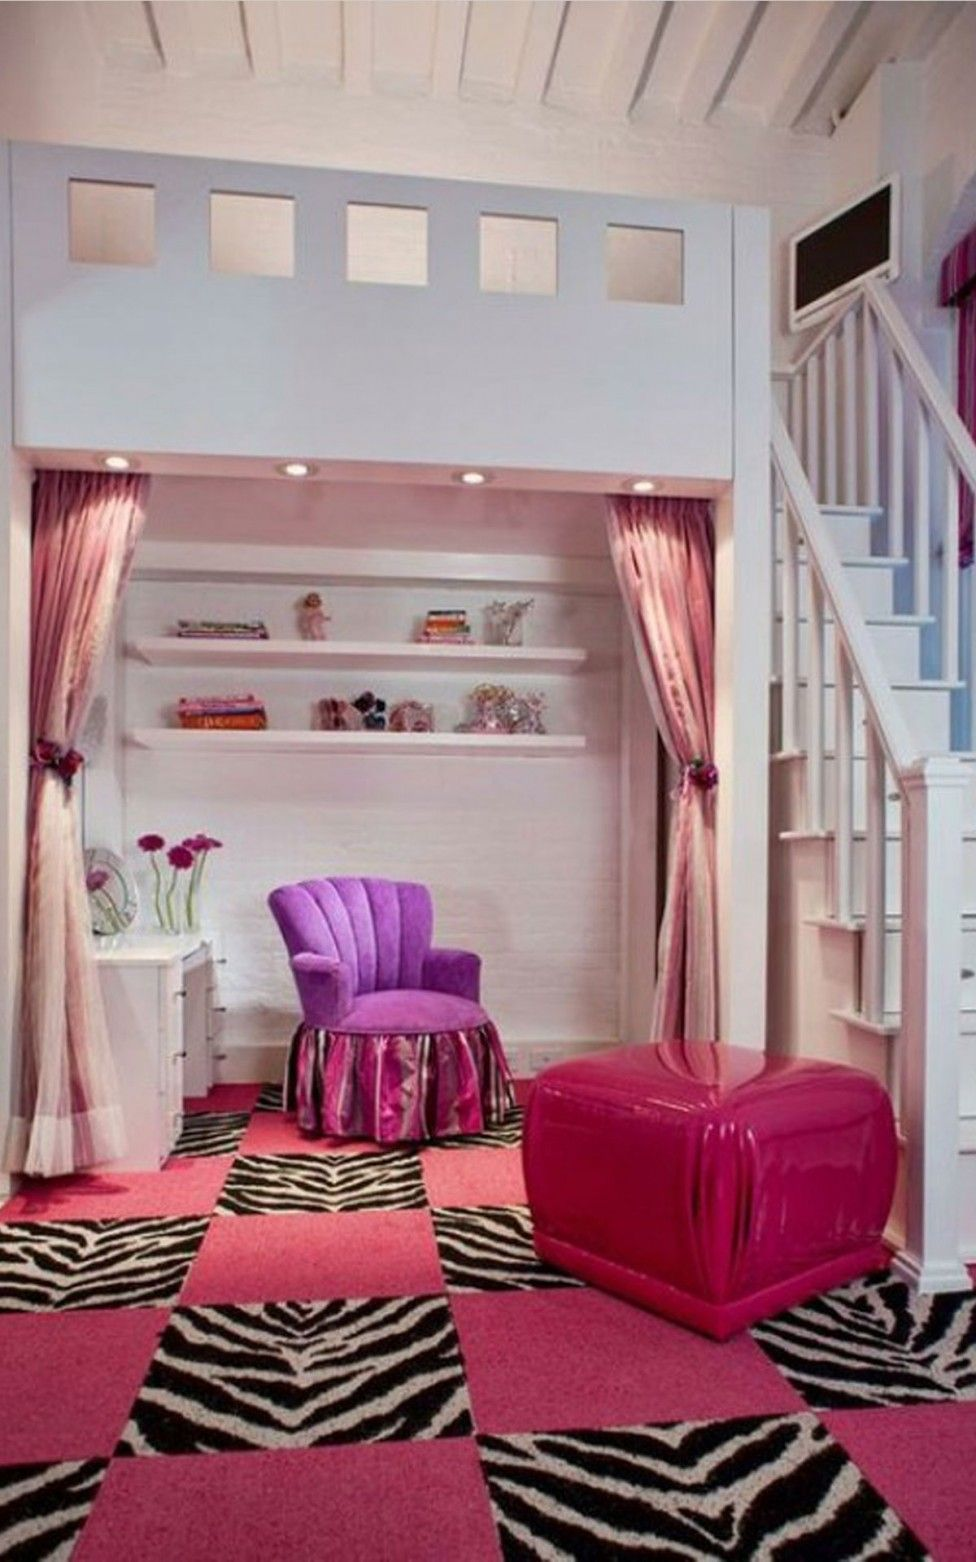 Small room ideas for girls with cute color bedroom 22 for Room ideas for teenage girl